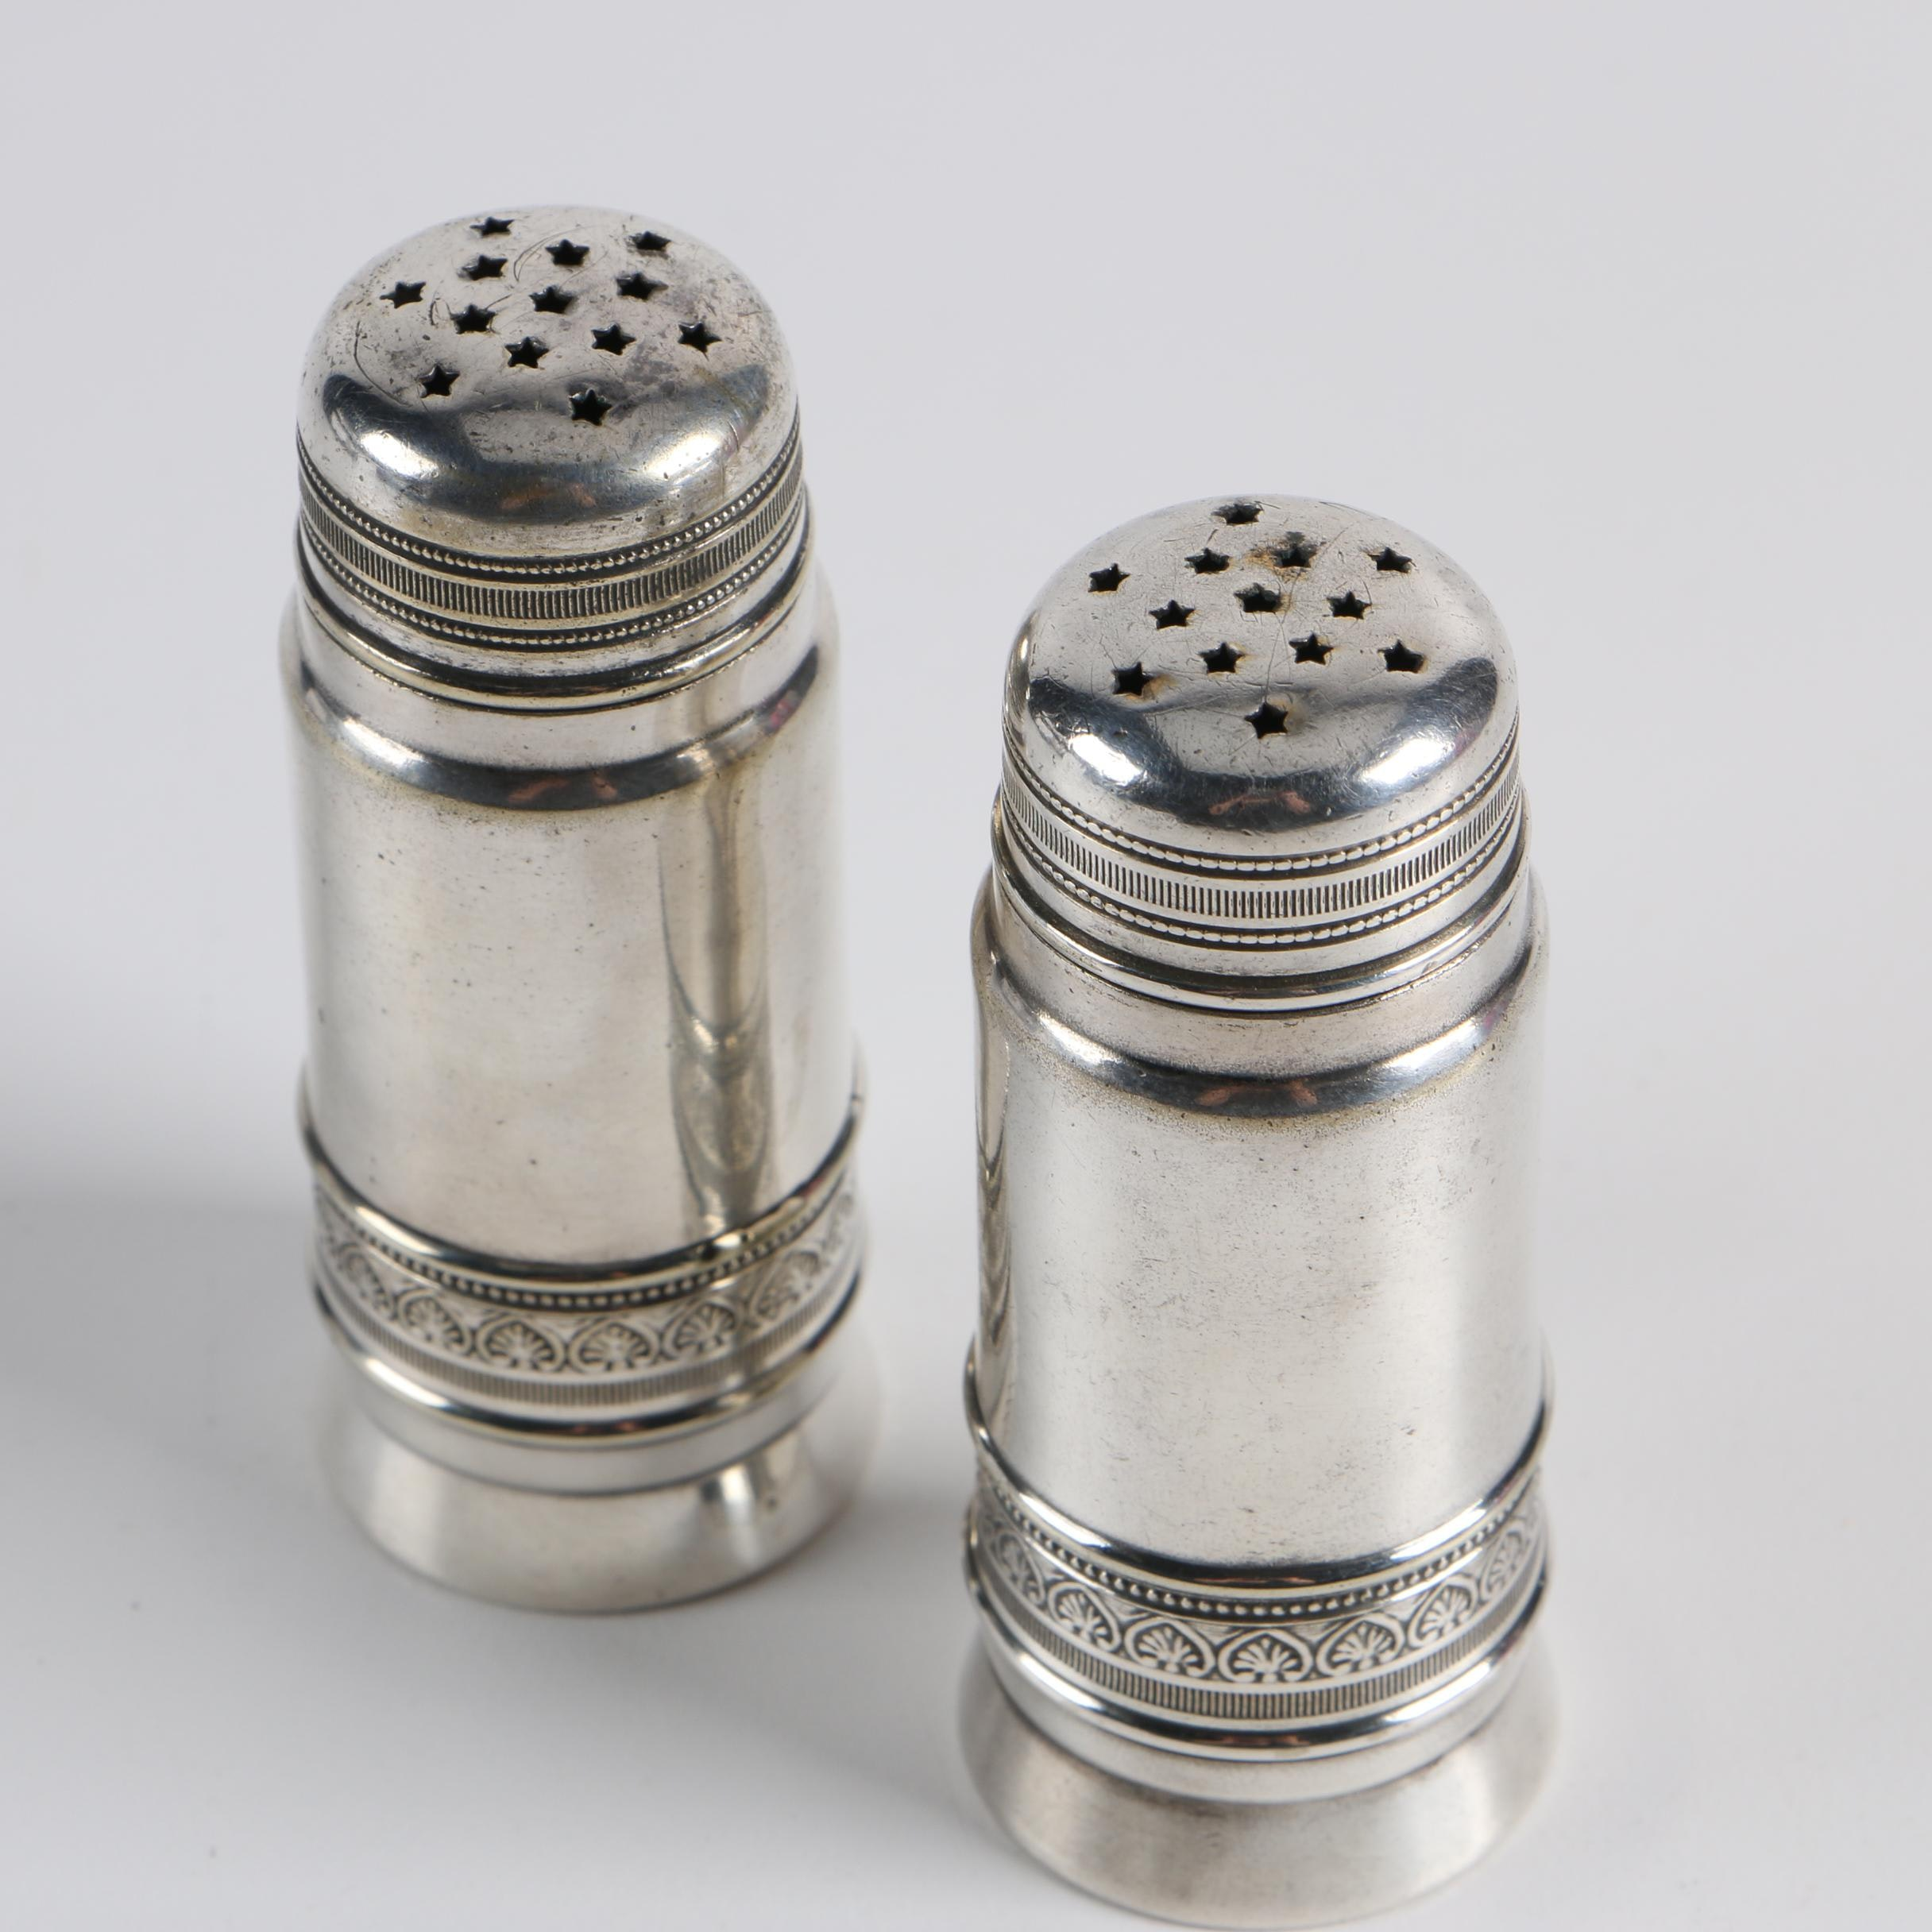 Gorham Silver Plate Salt and Pepper Shakers